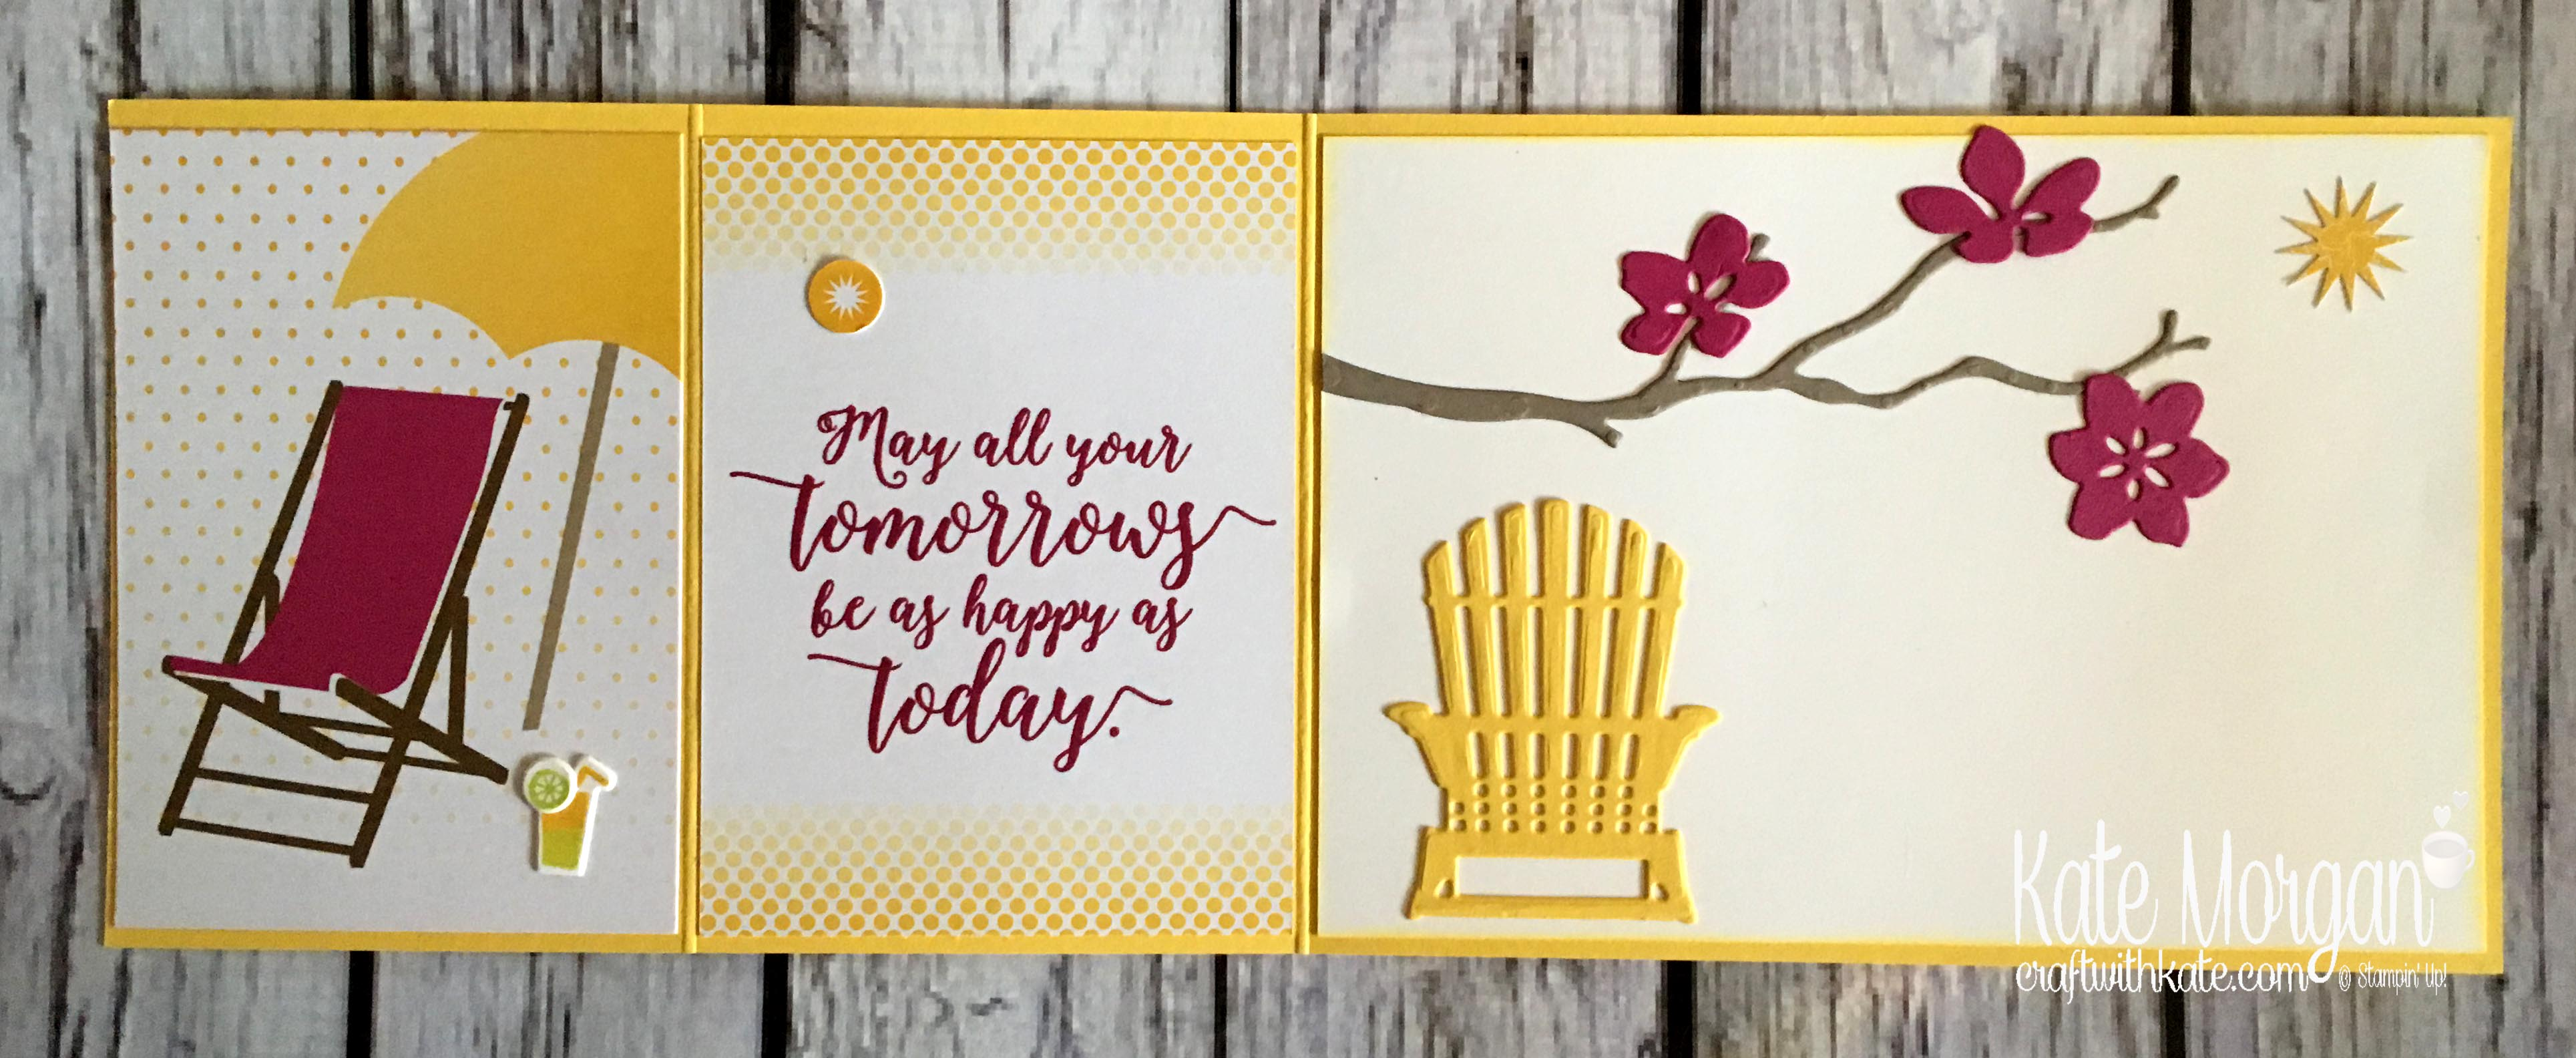 Summer - Colourful Season & Seasonal Layers Thinlits by Kate Morgan, Independent Stampin Up demonstrator, Australia open